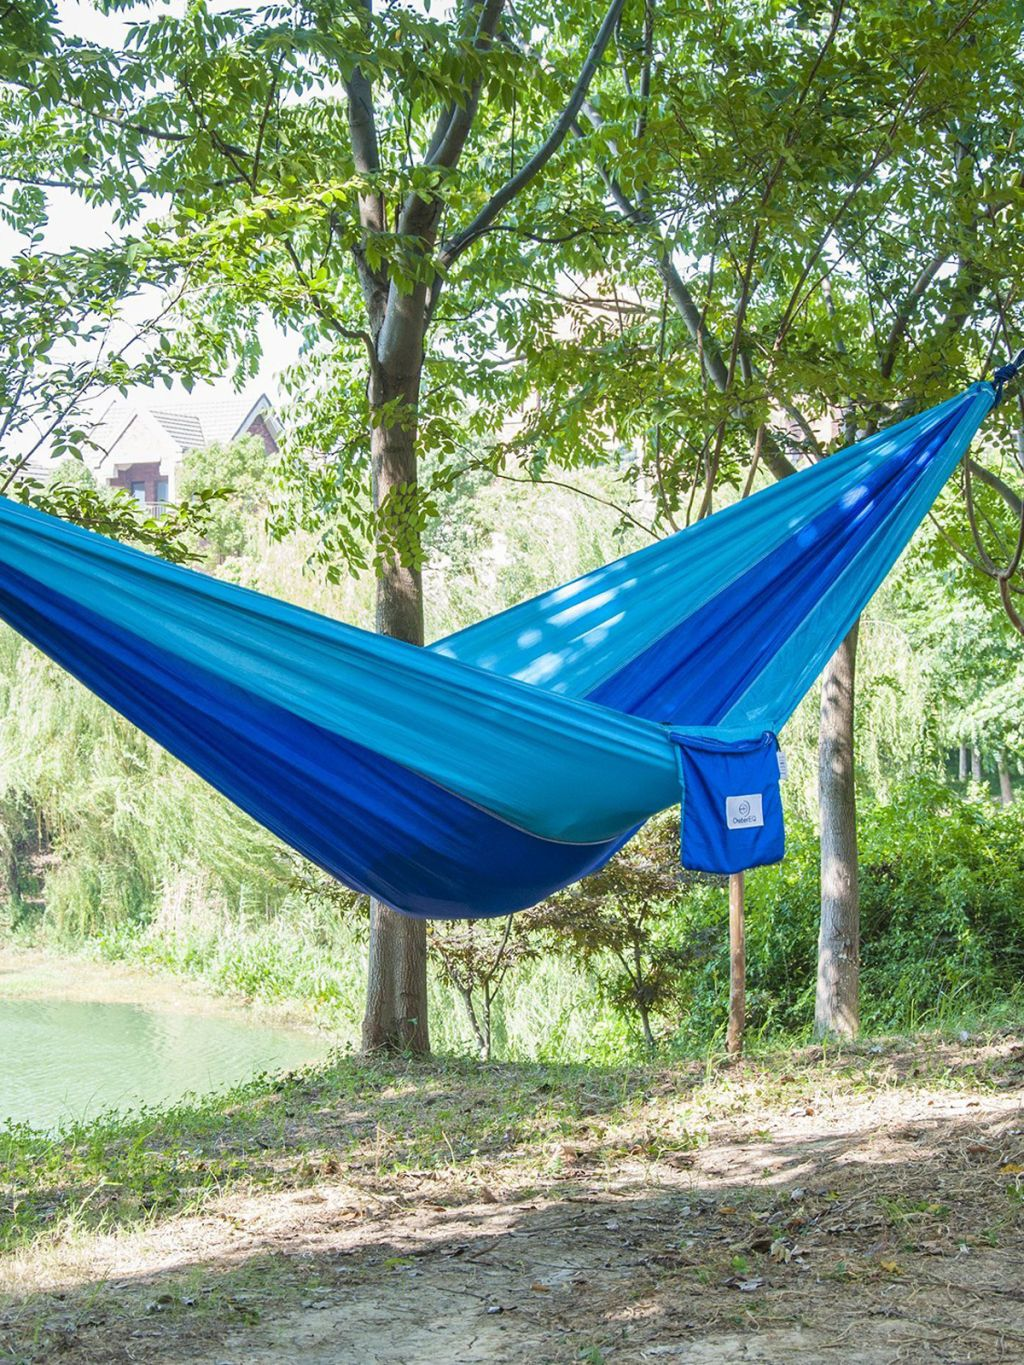 19 travel camping hammock 28 essential camping gear items   cheap camping supplies  rh   countryliving